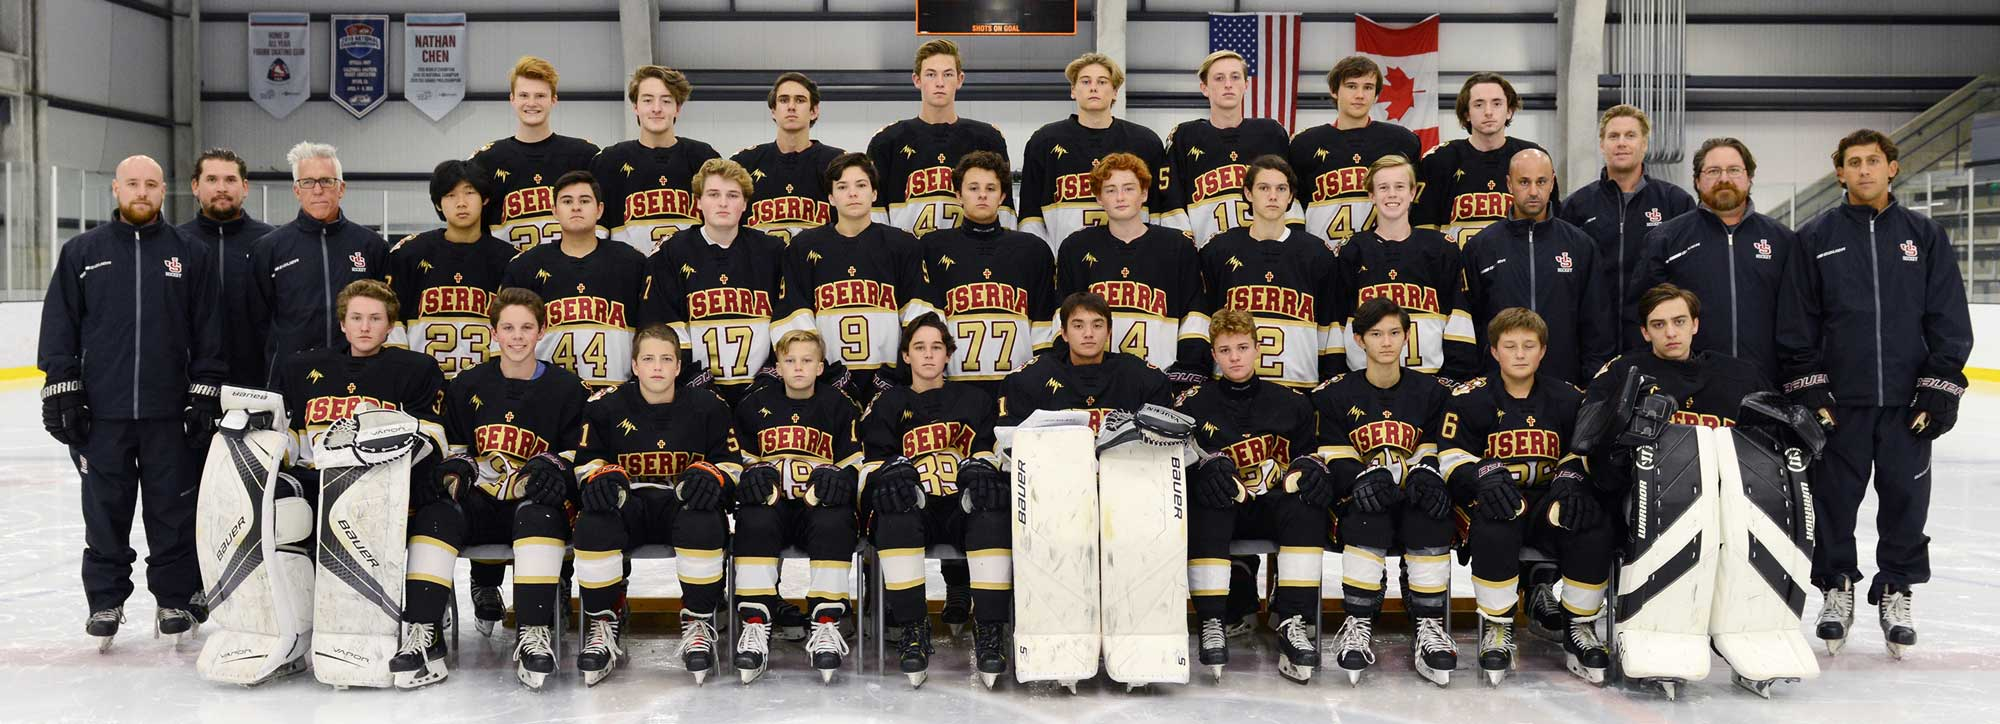 Photo of the JSerra Ice Hockey Team for the 2018-2019 school year